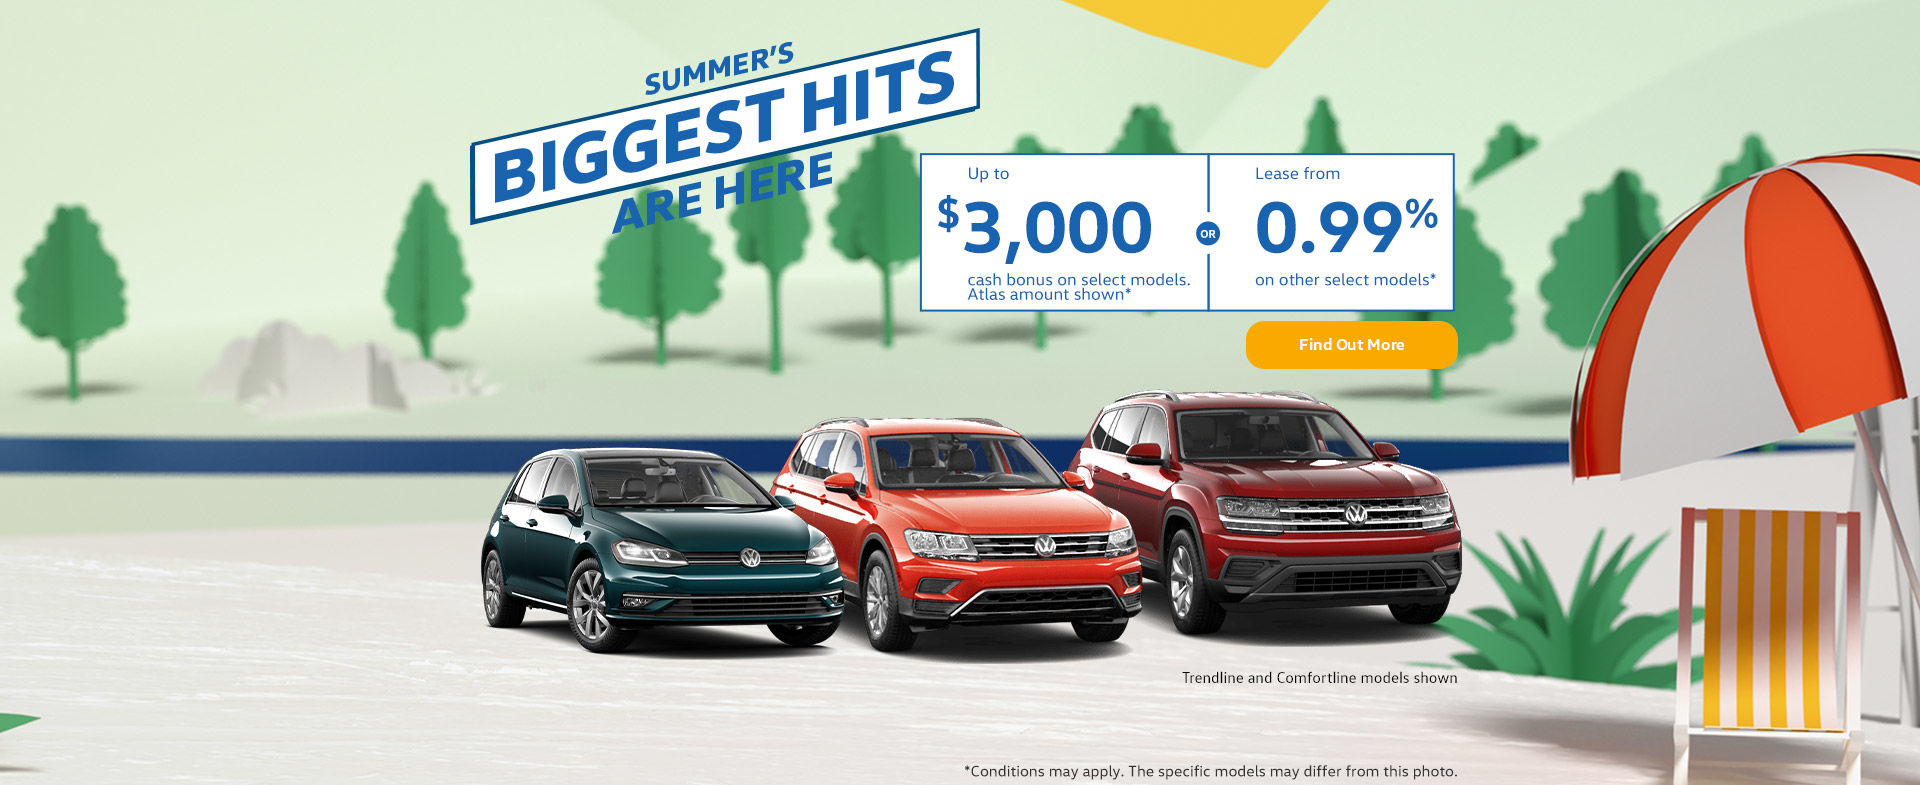 Event - Summer's Biggest Hits are Here